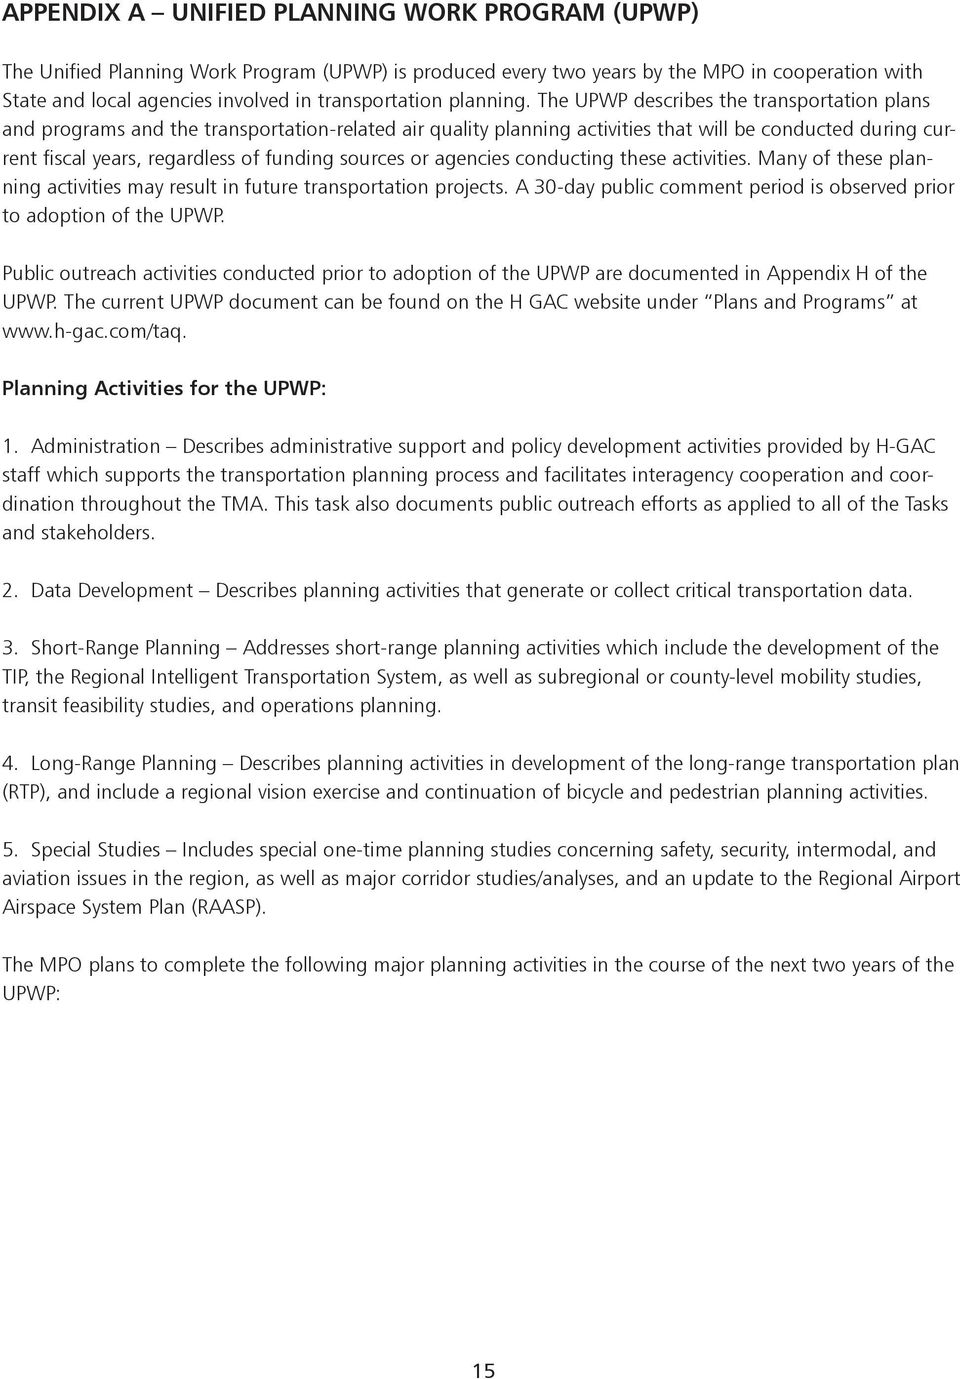 The UPWP describes the transportation plans and programs and the transportation-related air quality planning activities that will be conducted during current fiscal years, regardless of funding